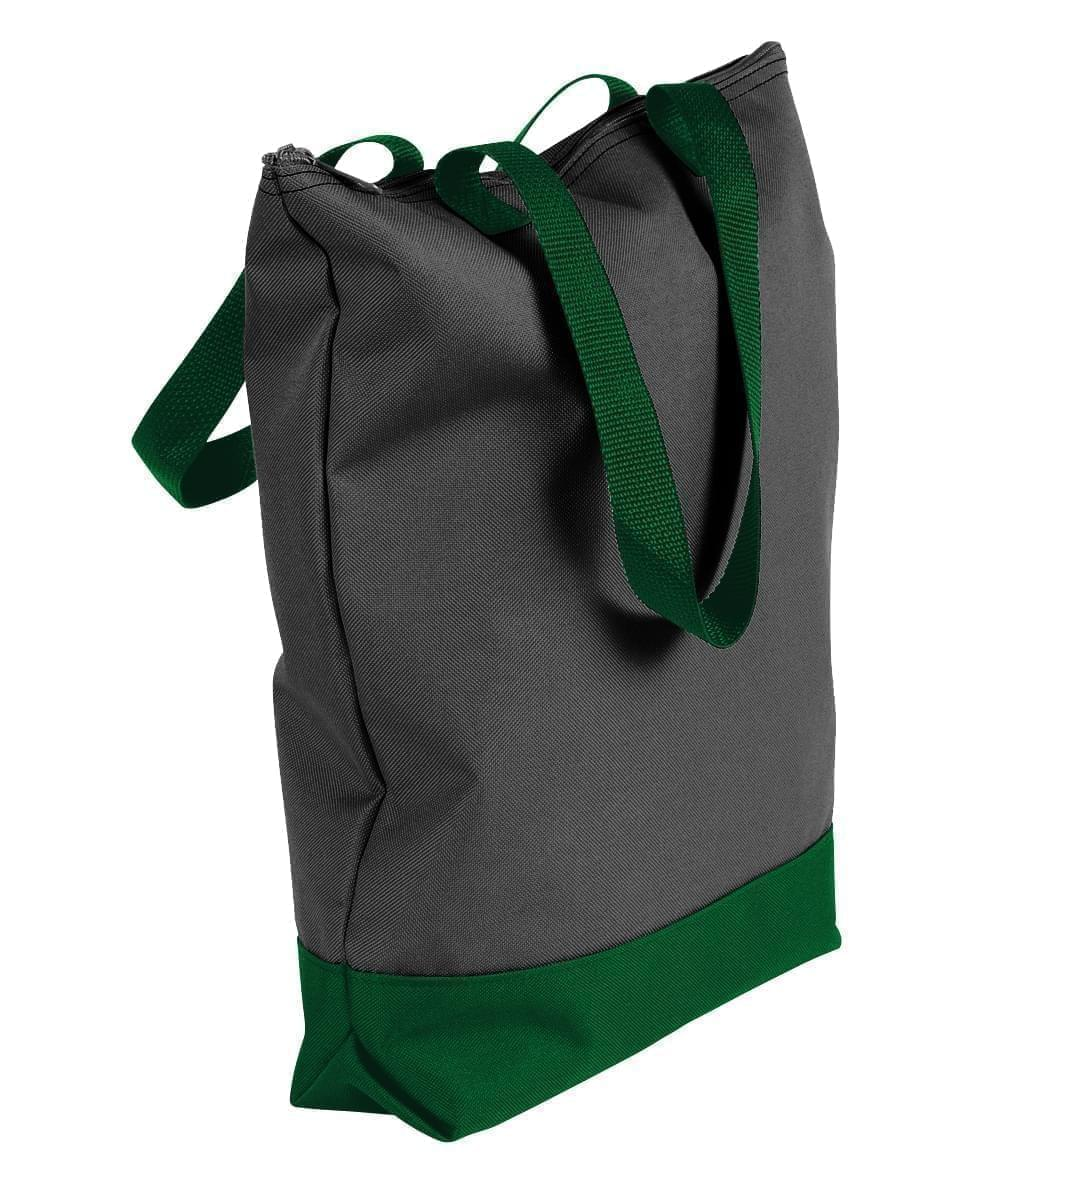 USA Made Canvas Portfolio Tote Bags, Black-Hunter Green, 1AAMX1UAHV